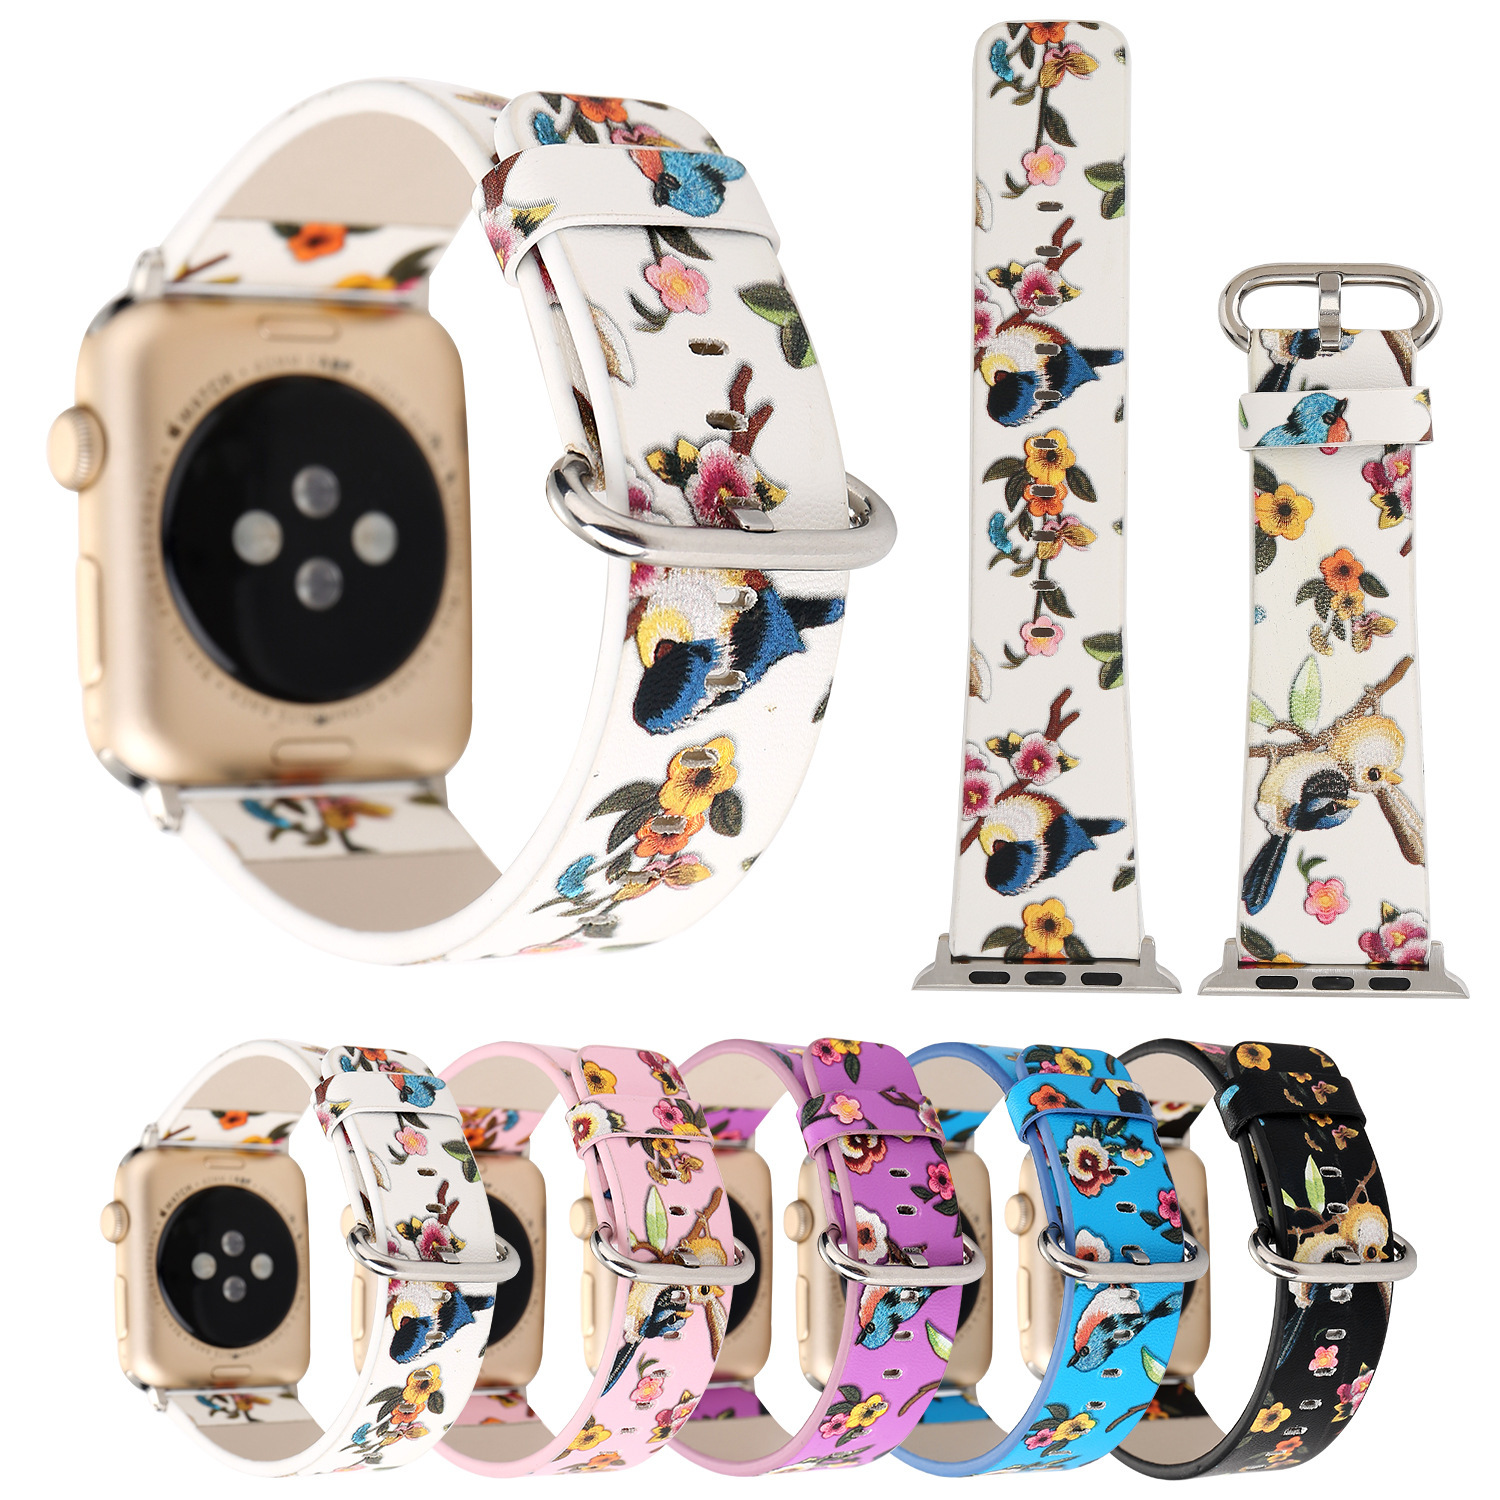 For Apple Watch The Sound Of Birds And The Fragance Of Flowers Leather Watch Strap APPLE Watch3 Watch Strap IWatch Leather Watch